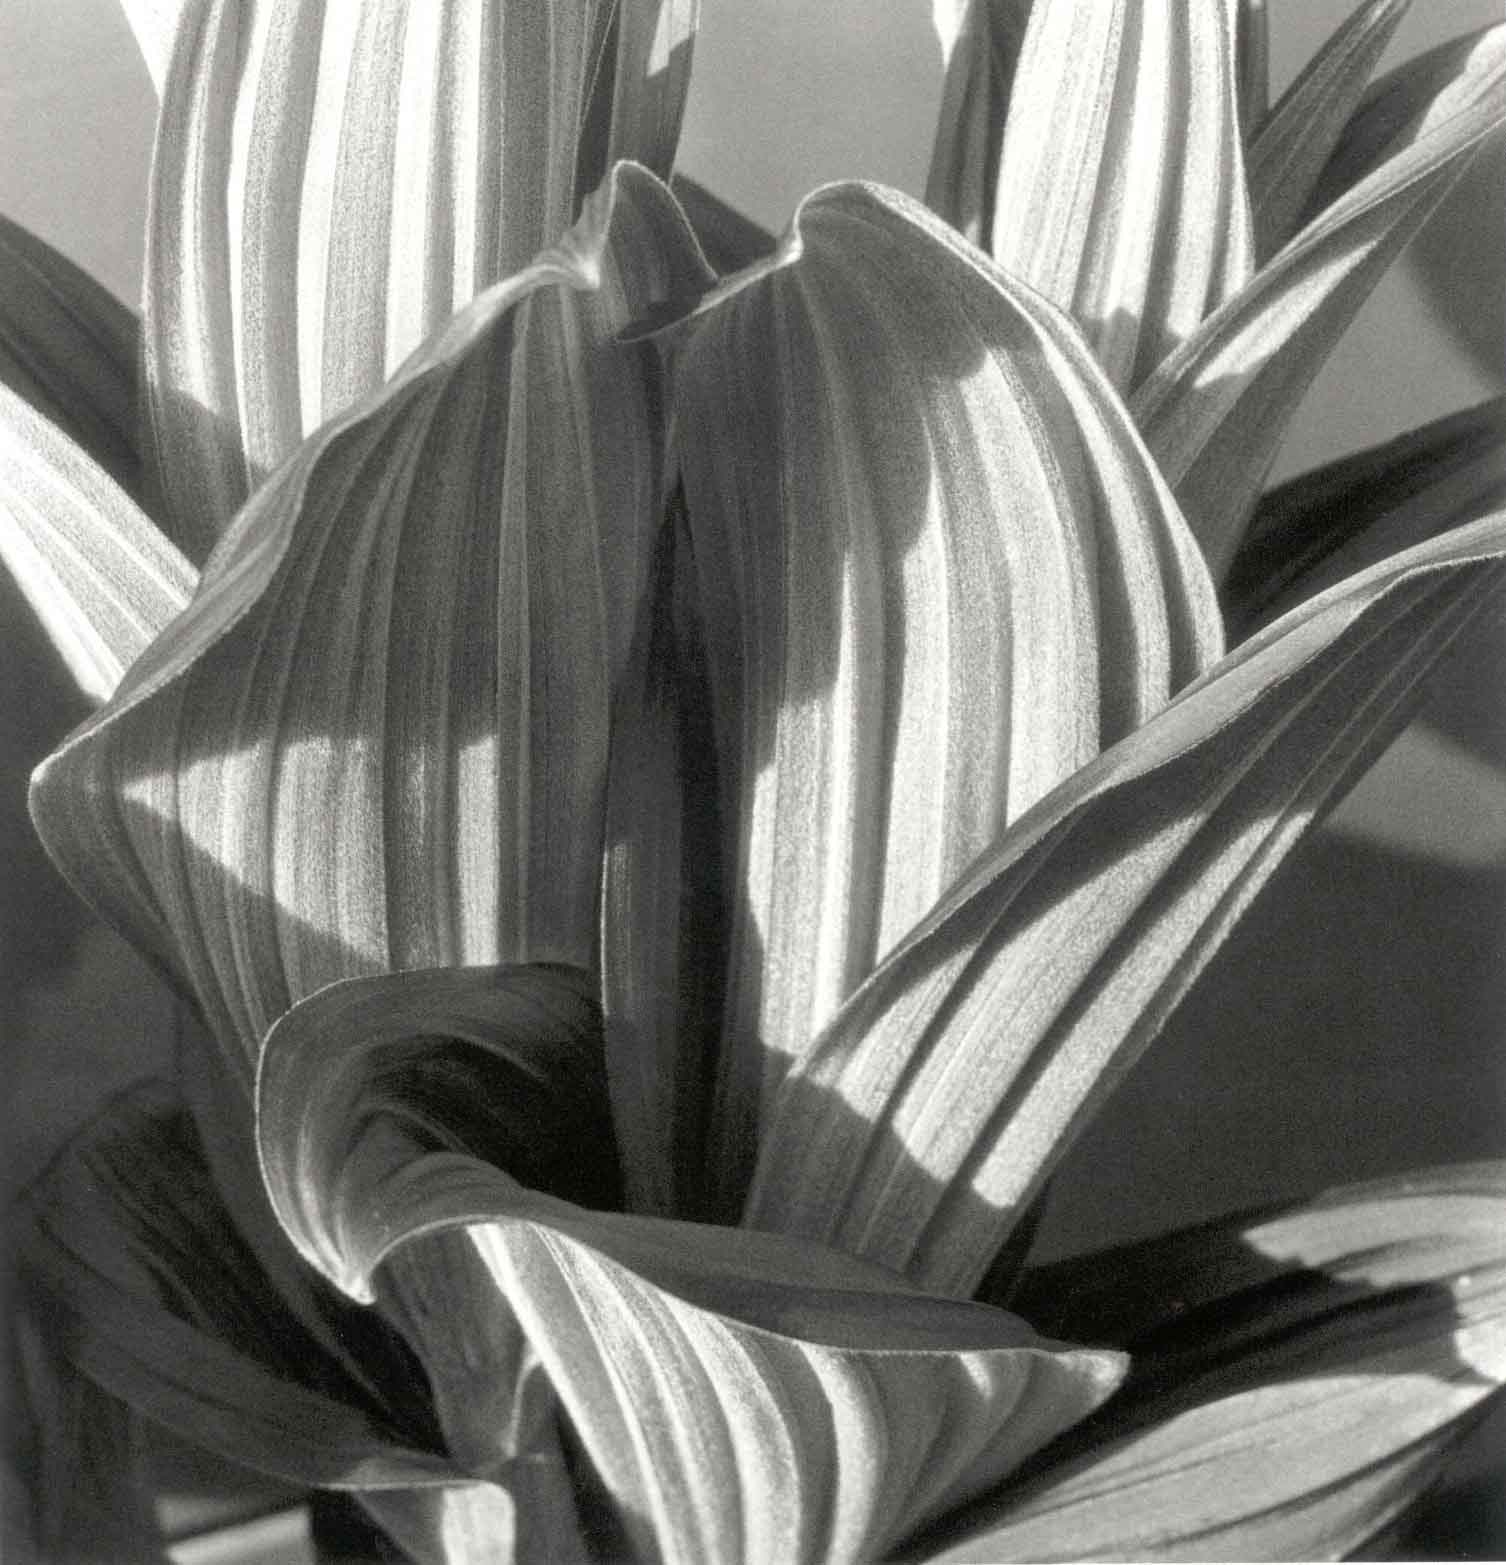 History in Photos Imogen Cunningham